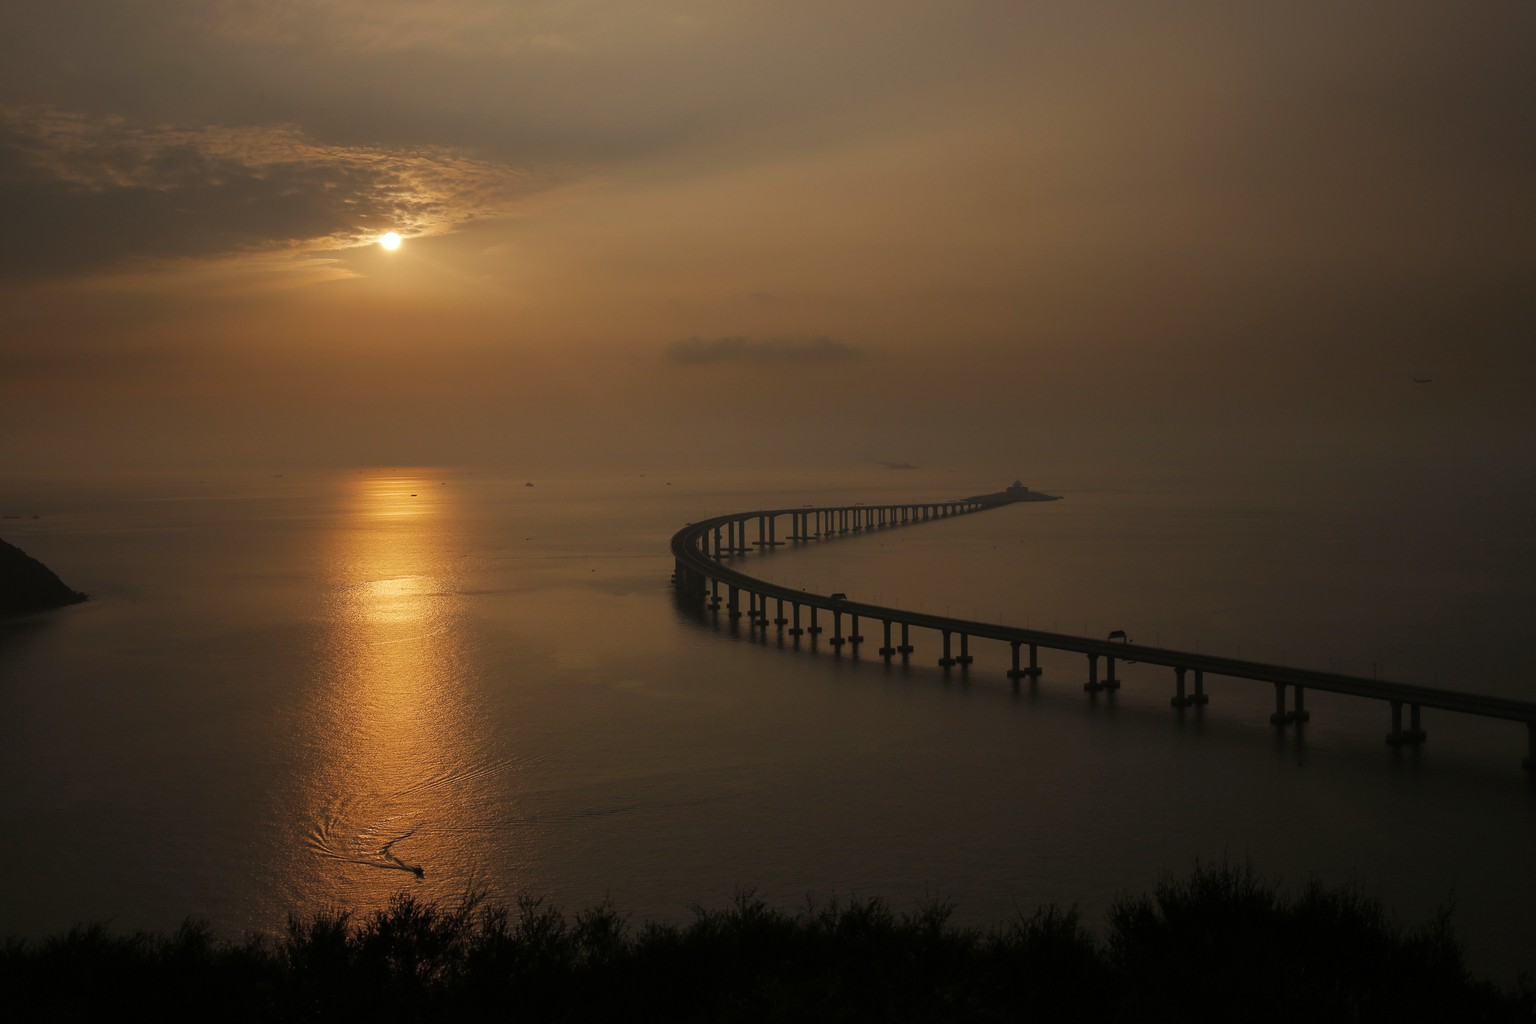 The Hong Kong-Zhuhai-Macau Bridge is seen against the sunset in Hong Kong, Monday, Oct. 22, 2018. The bridge, the world's longest cross-sea project, which has a total length of 55 kilometers (34 miles), will have opening ceremony in Zhuhai on Oct. 23. (AP Photo/Kin Cheung)